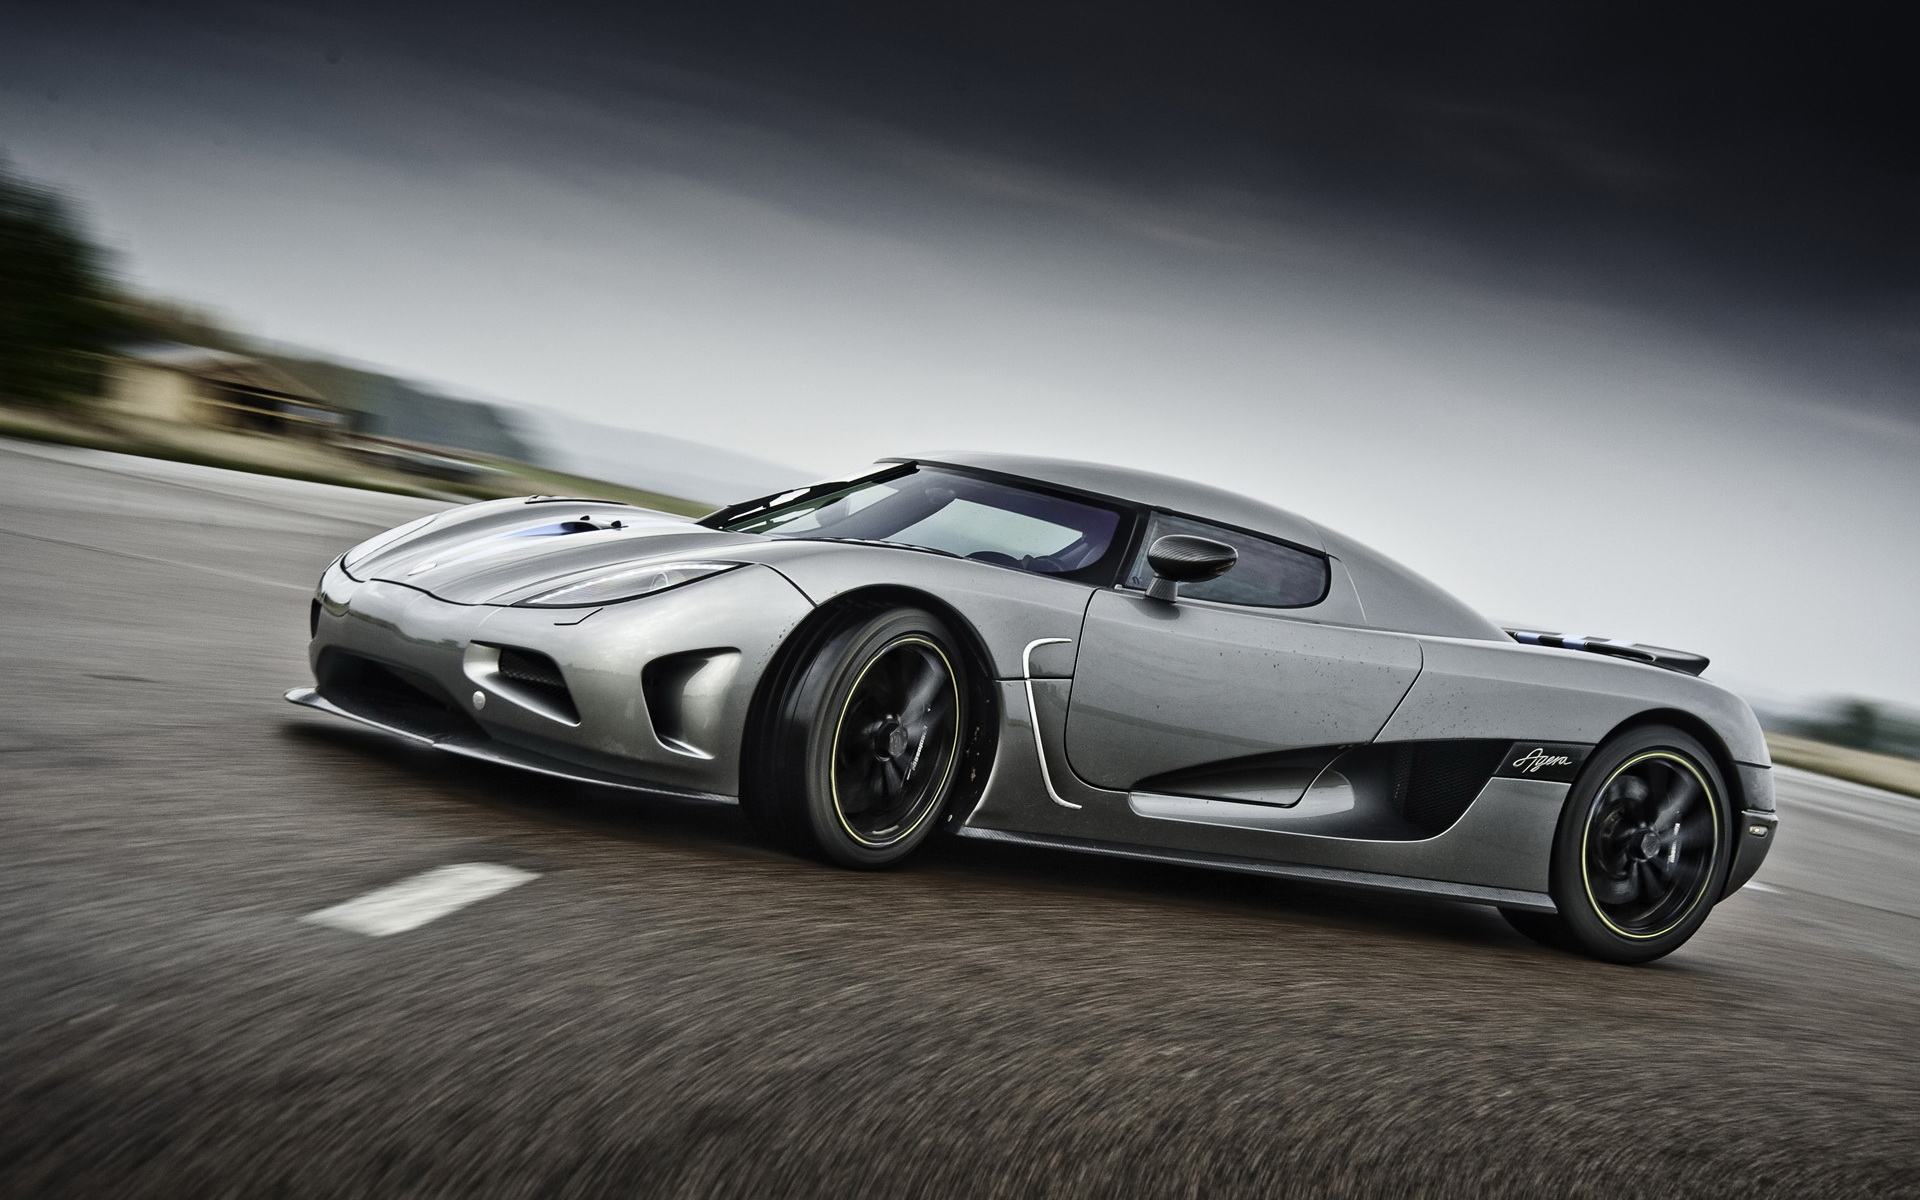 Koenigsegg Agera wallpapers and images   wallpapers pictures photos 1920x1200